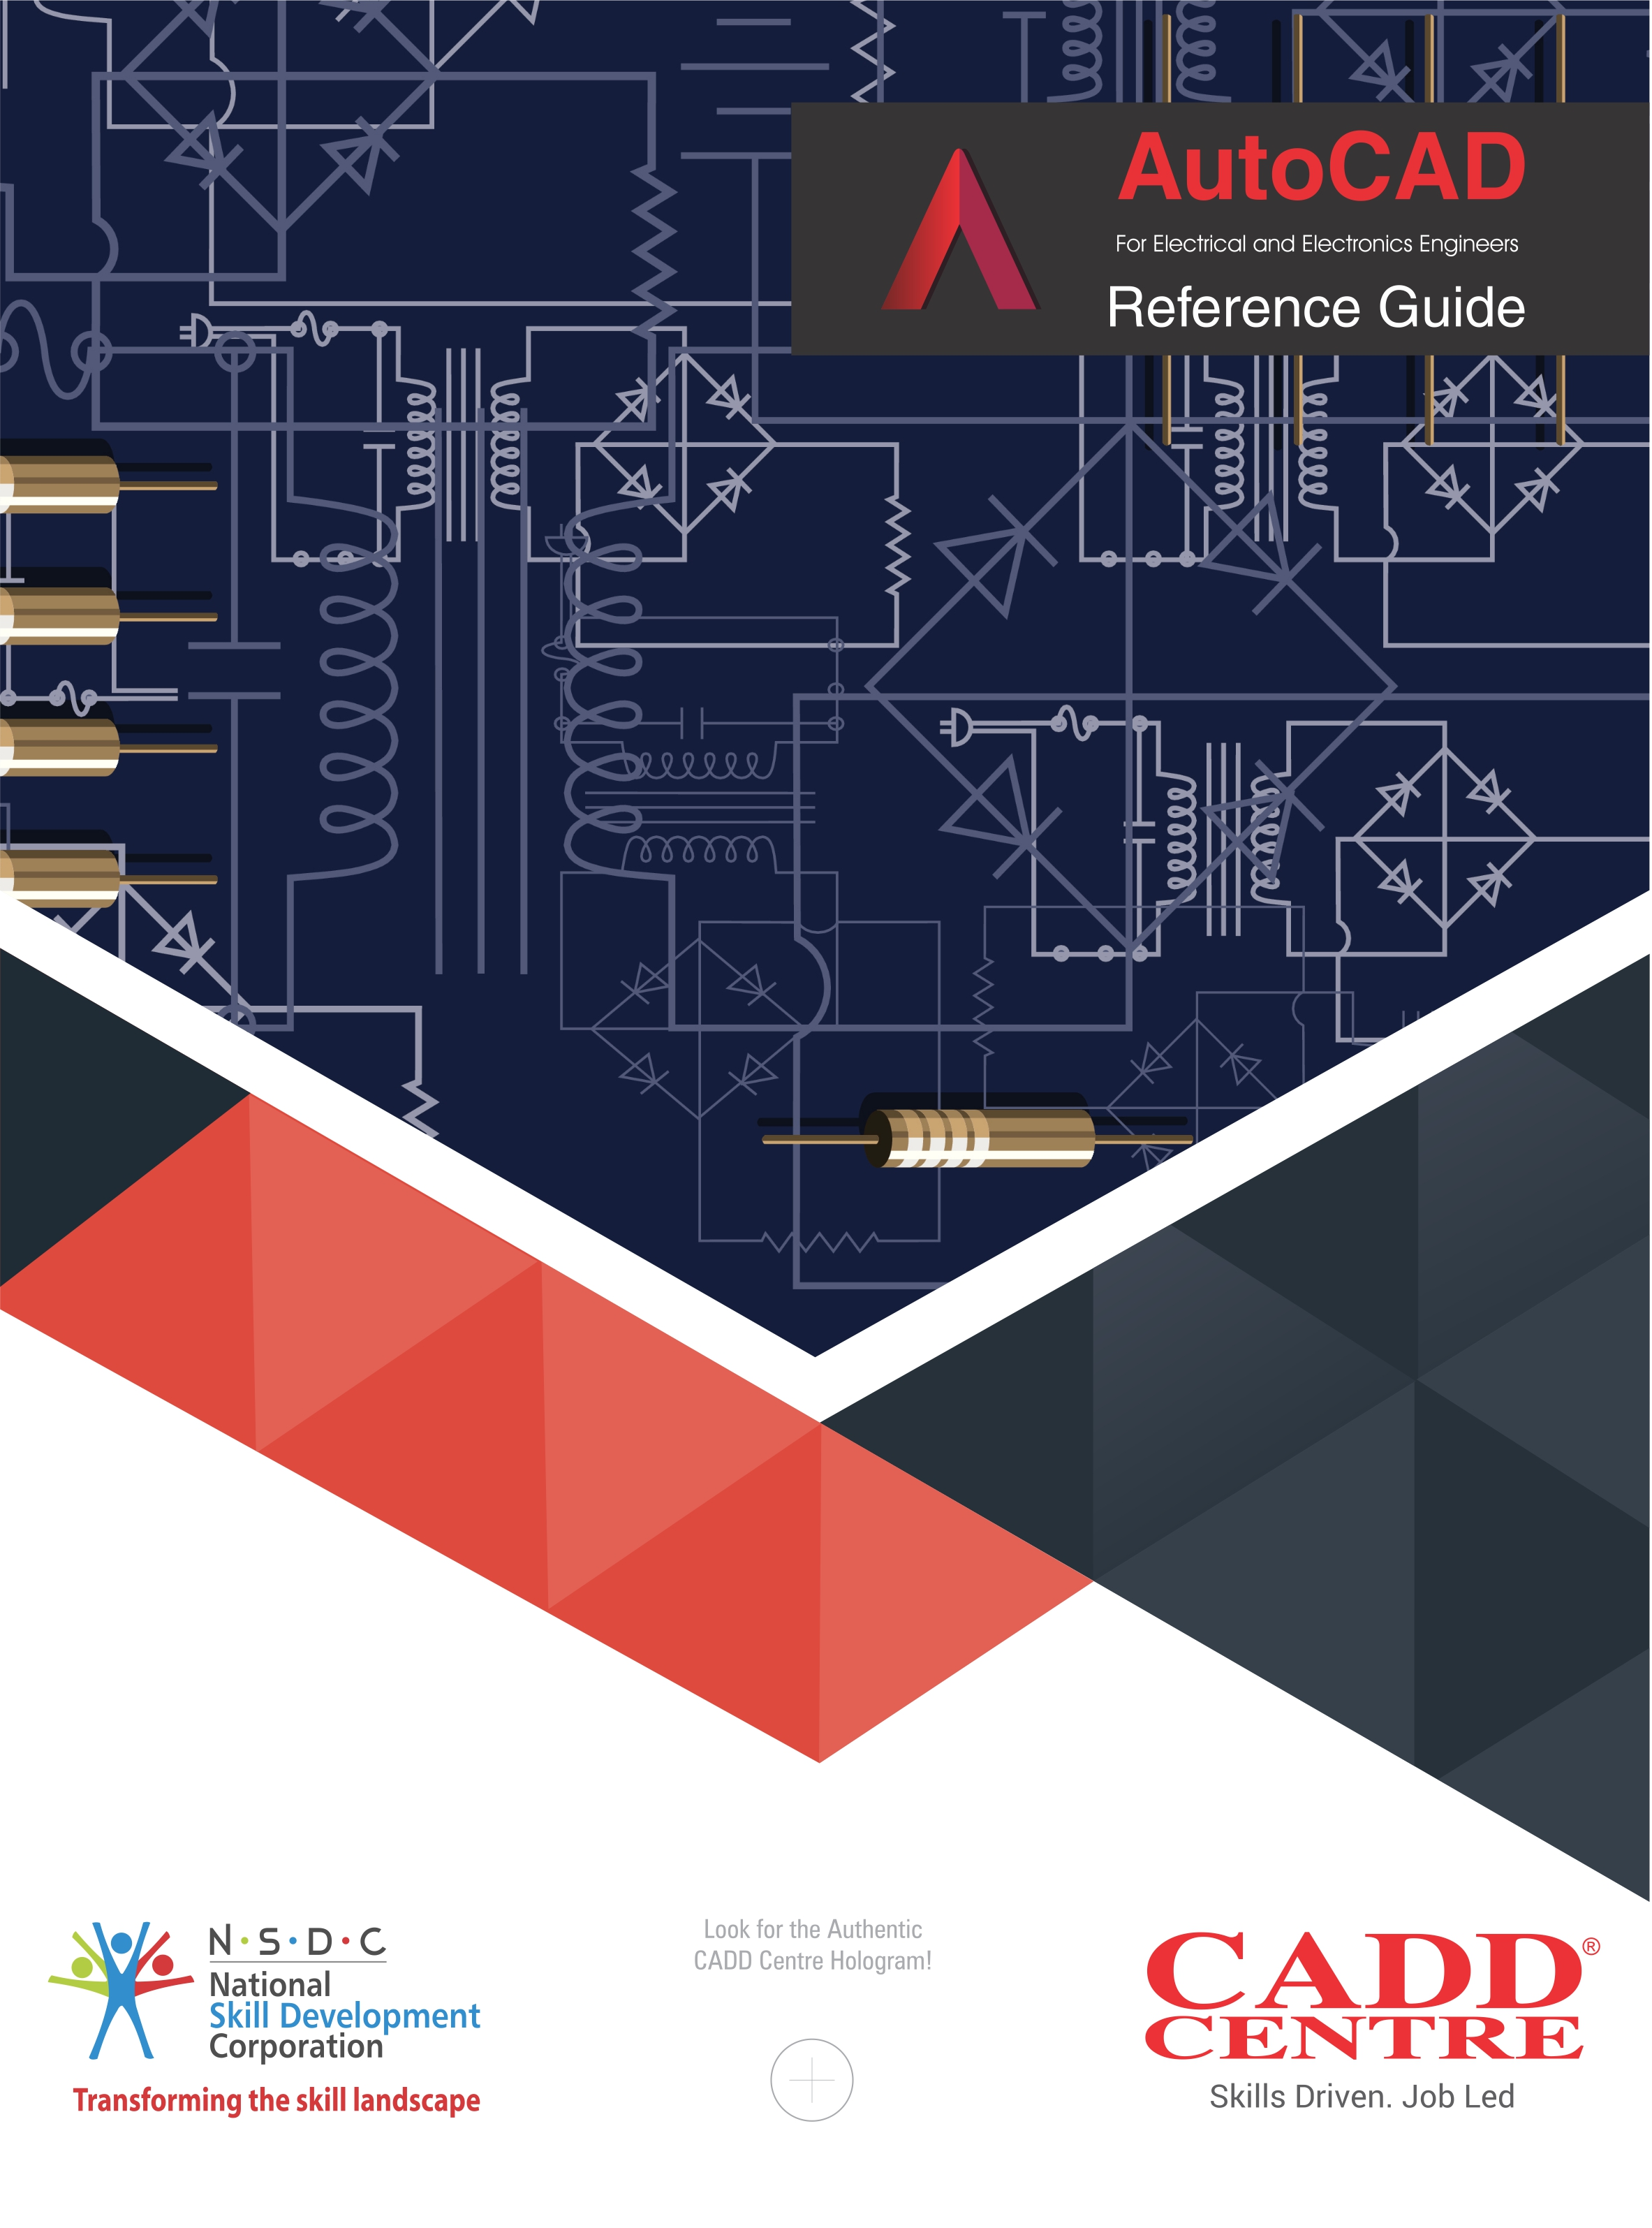 AutoCAD for Electrical& Electronic engineers reference guide